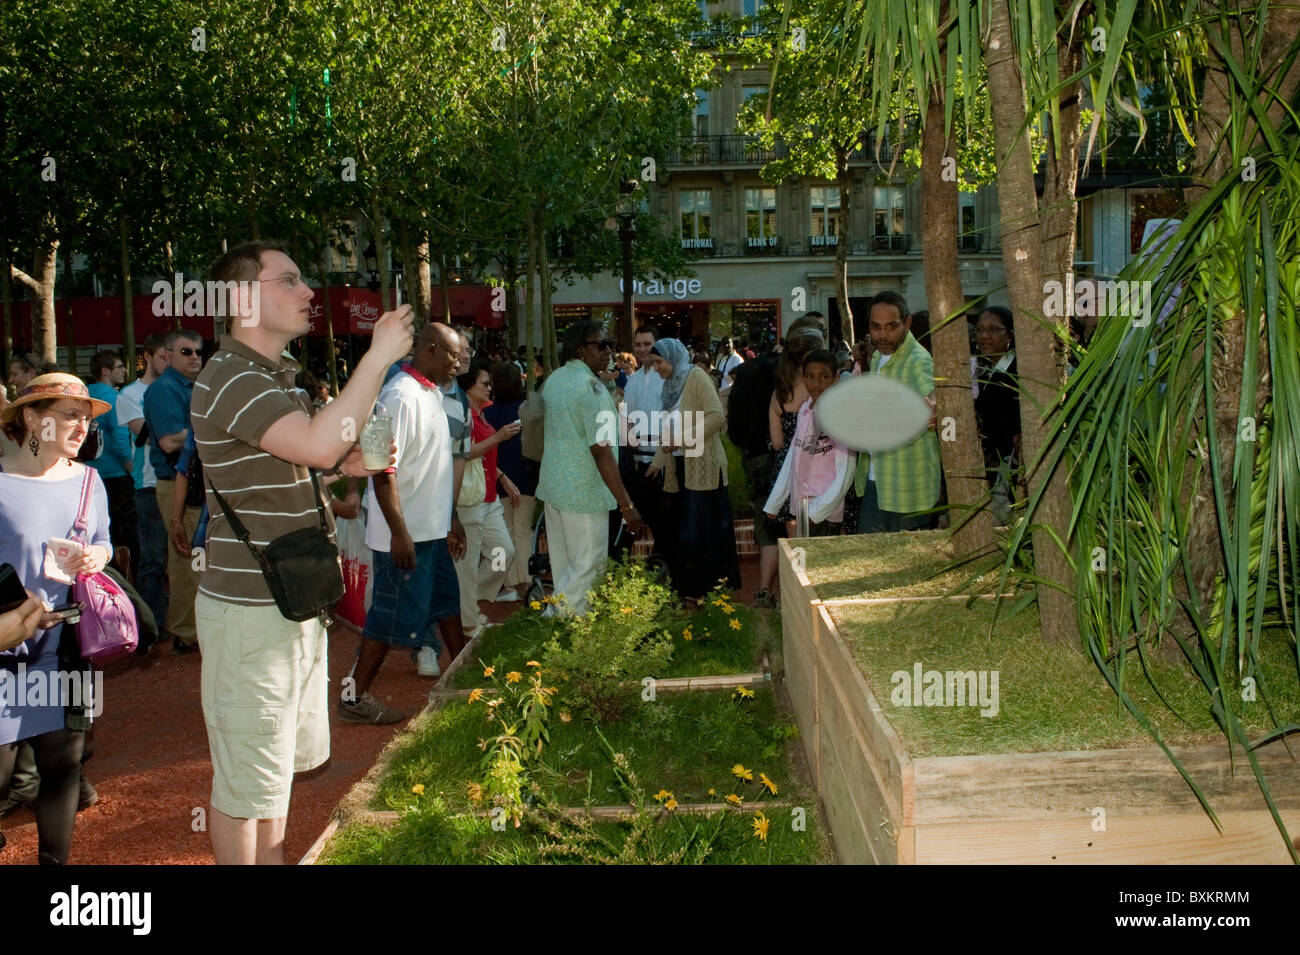 Adults Visiting Paris, France, Garden Festival, Champs-Ely-sees Farmer's Event - Stock Image